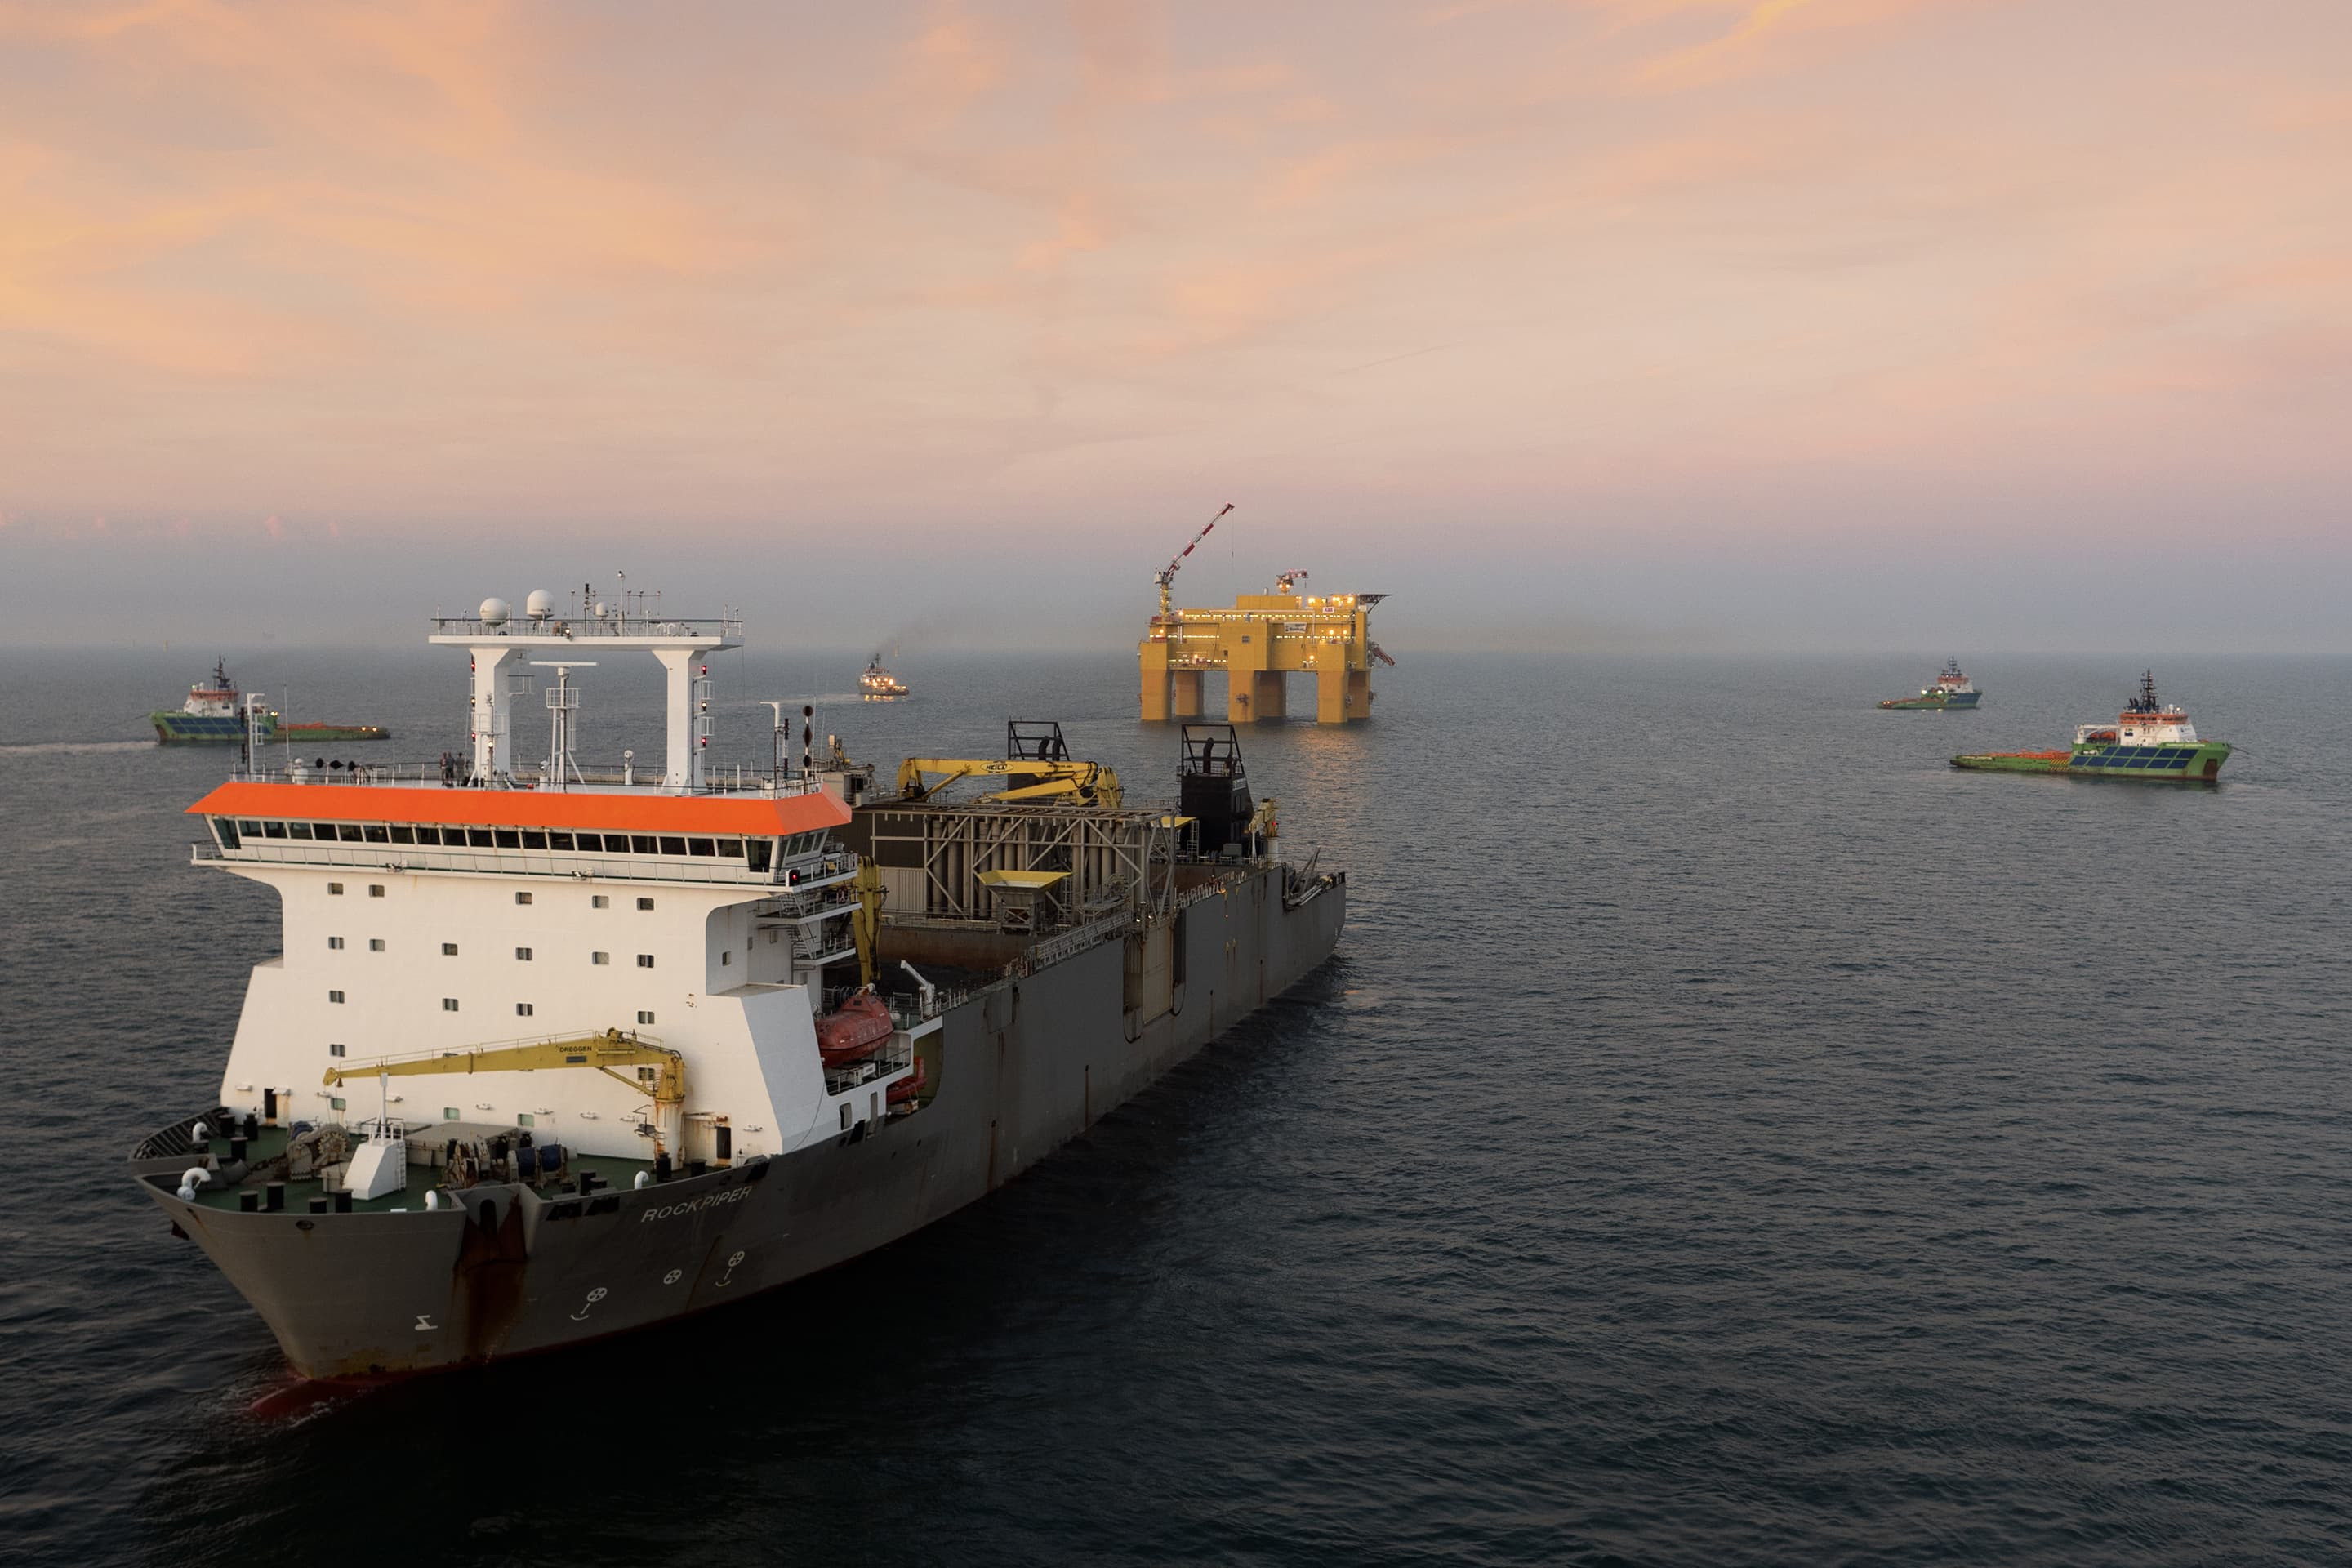 Fallpipe vessel Rockpiper ballasted the platform by filling the legs with 52,000 tons of rock